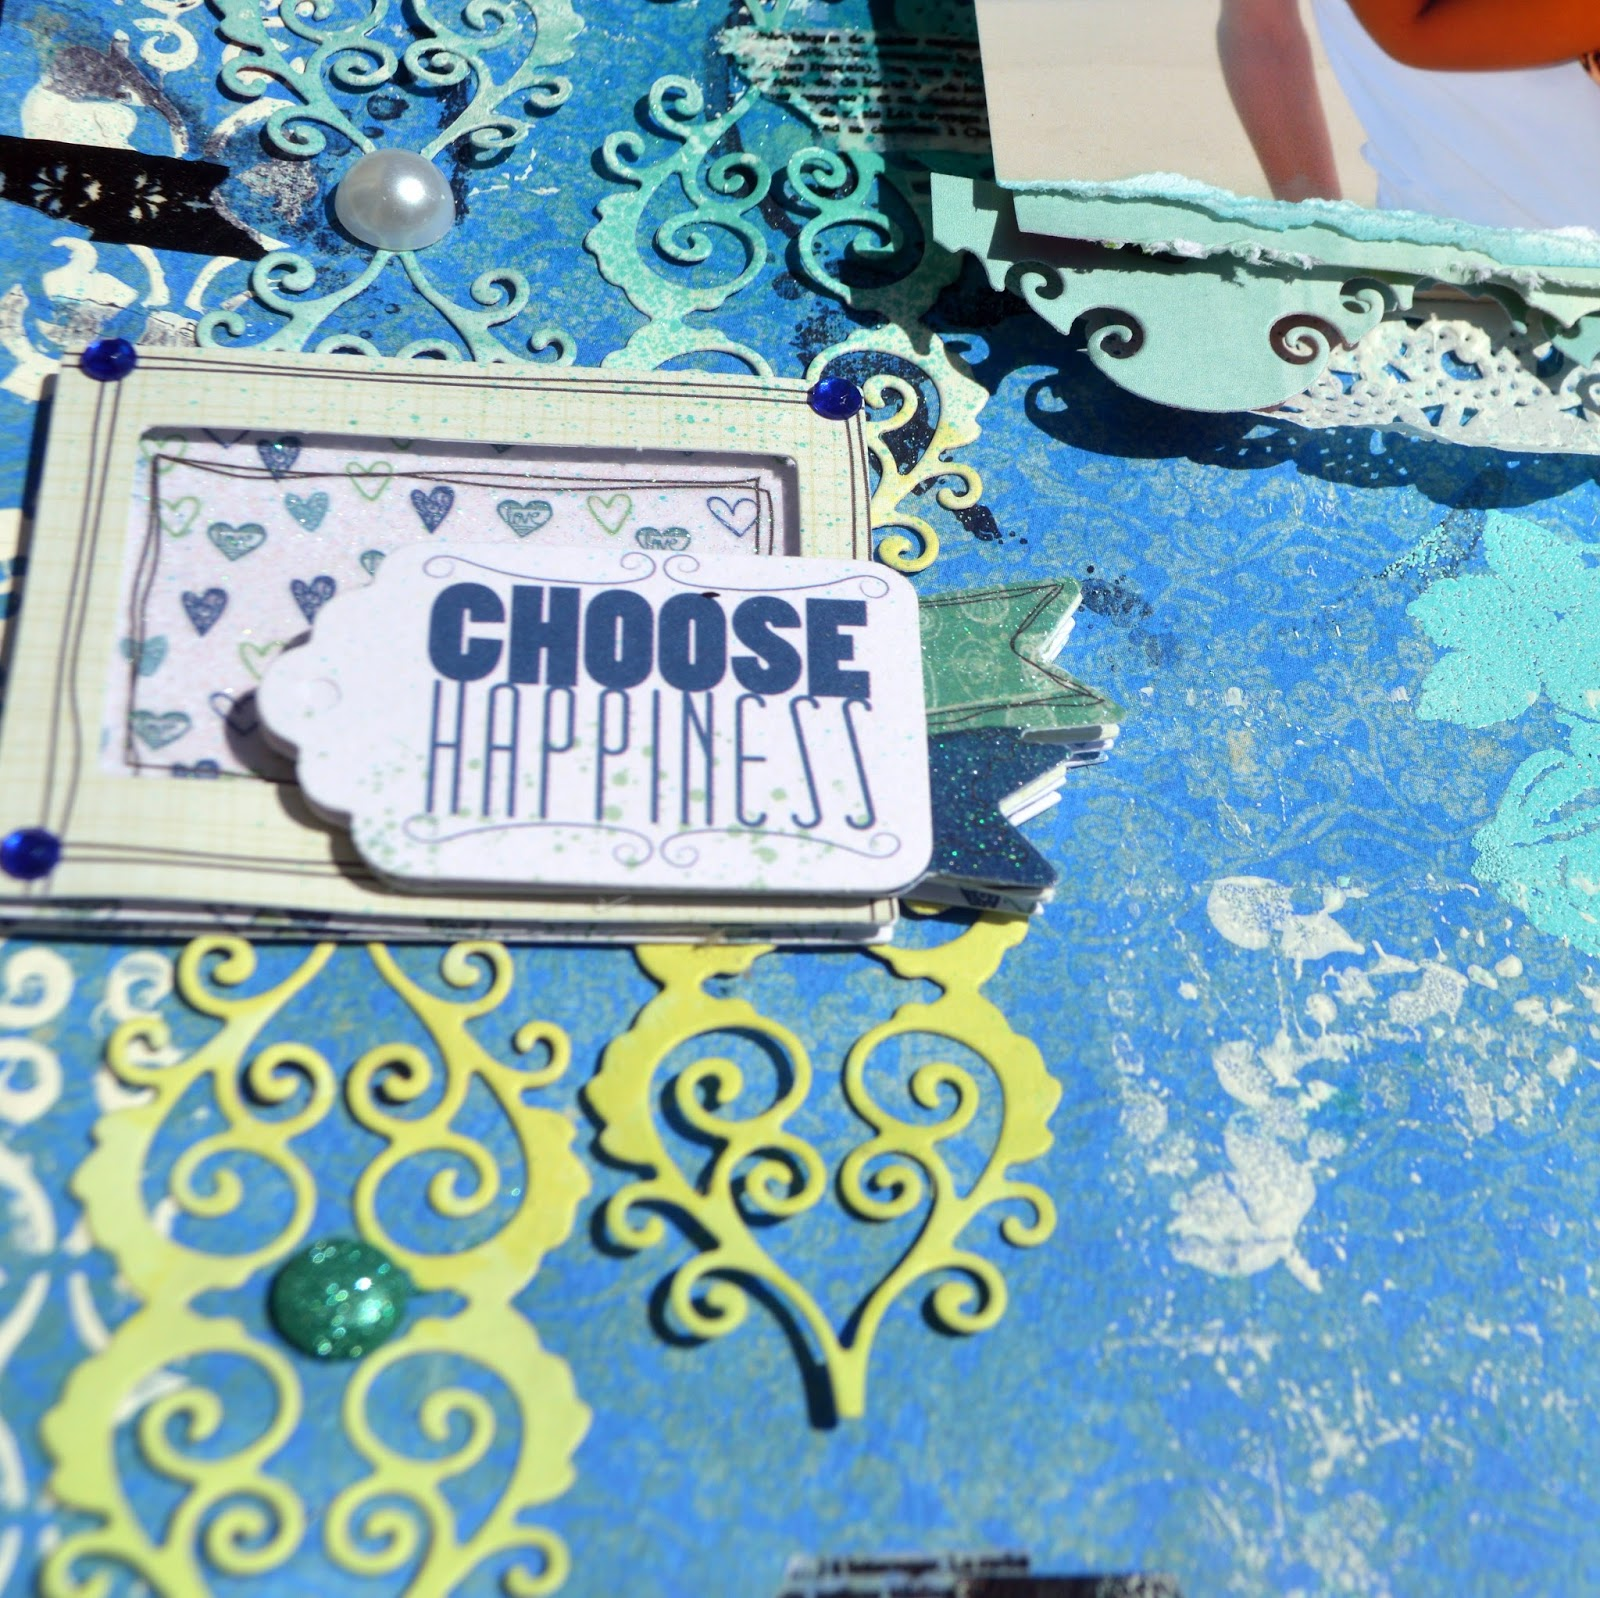 CHOOSE_HAPPINESS_AGNIESZKA_BELLAIDEA_MIXEDMEDIA_PAGE_BOBUNNY_3L_01